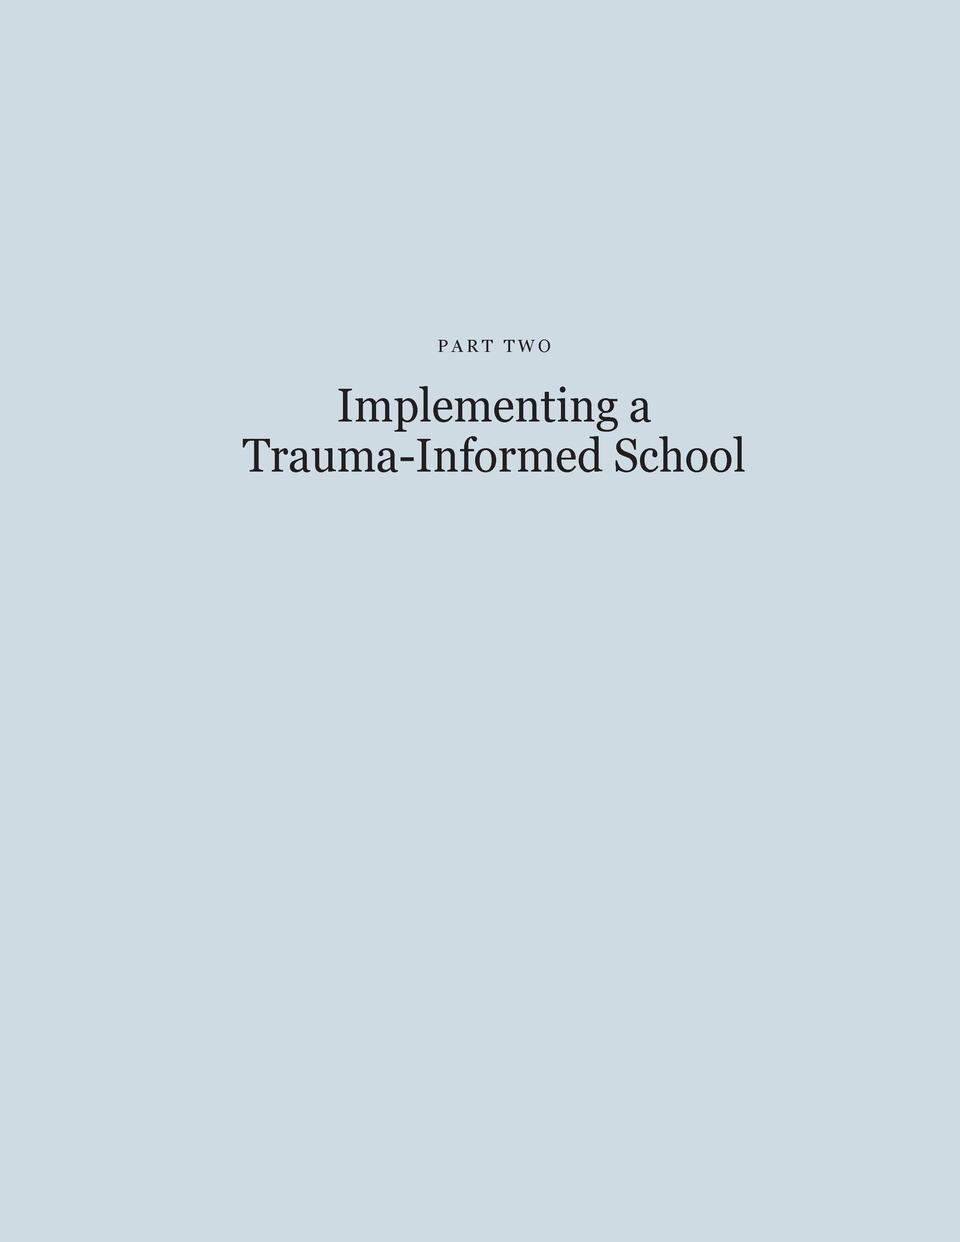 PART TWO  Implementing a Trauma-Informed School